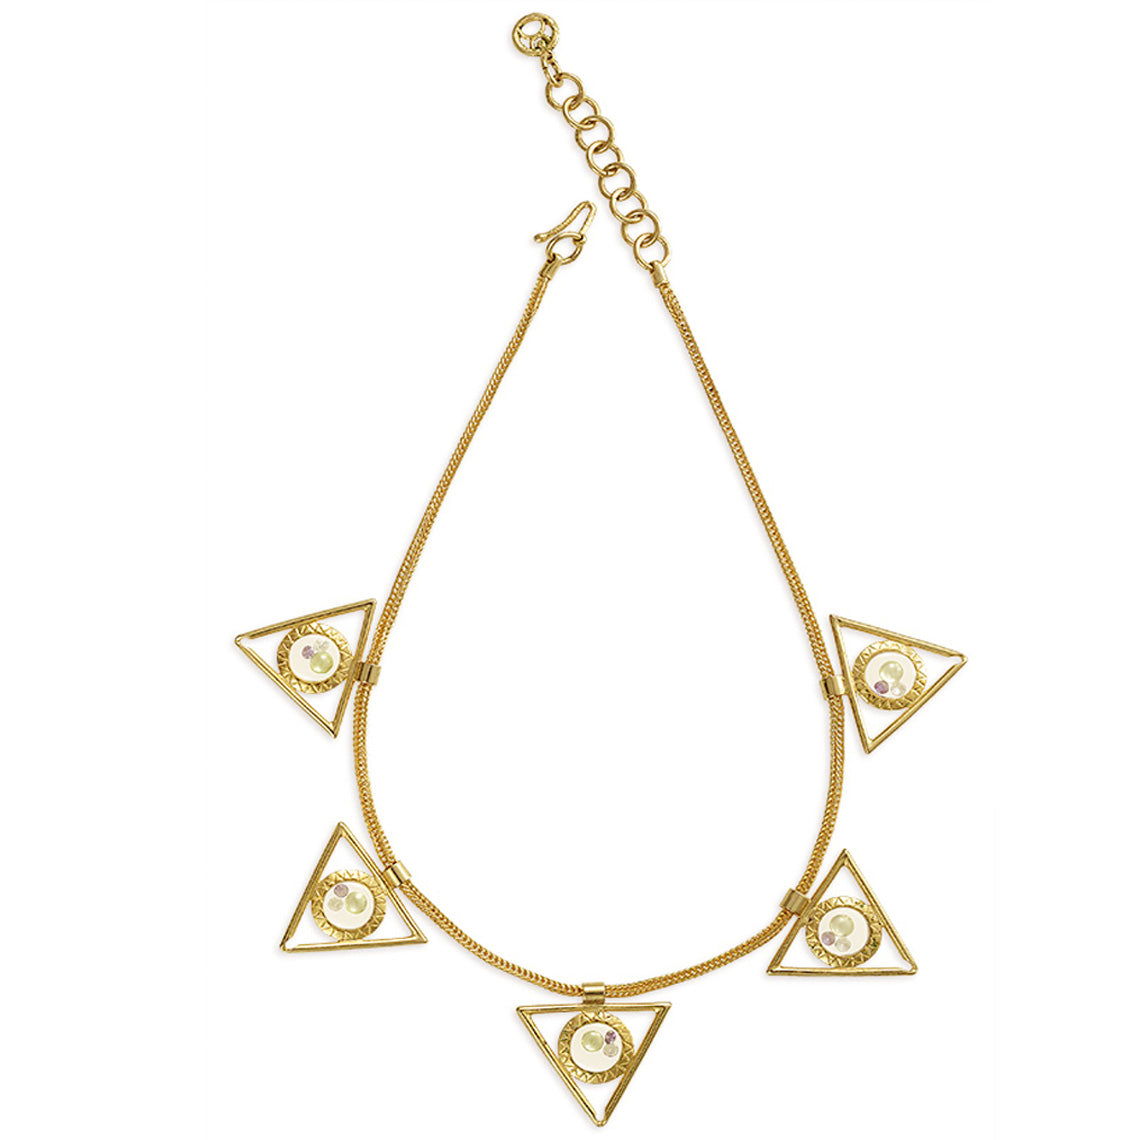 floating-multi-triangle-necklace-in-gold-designed-by-alexandrakoumba